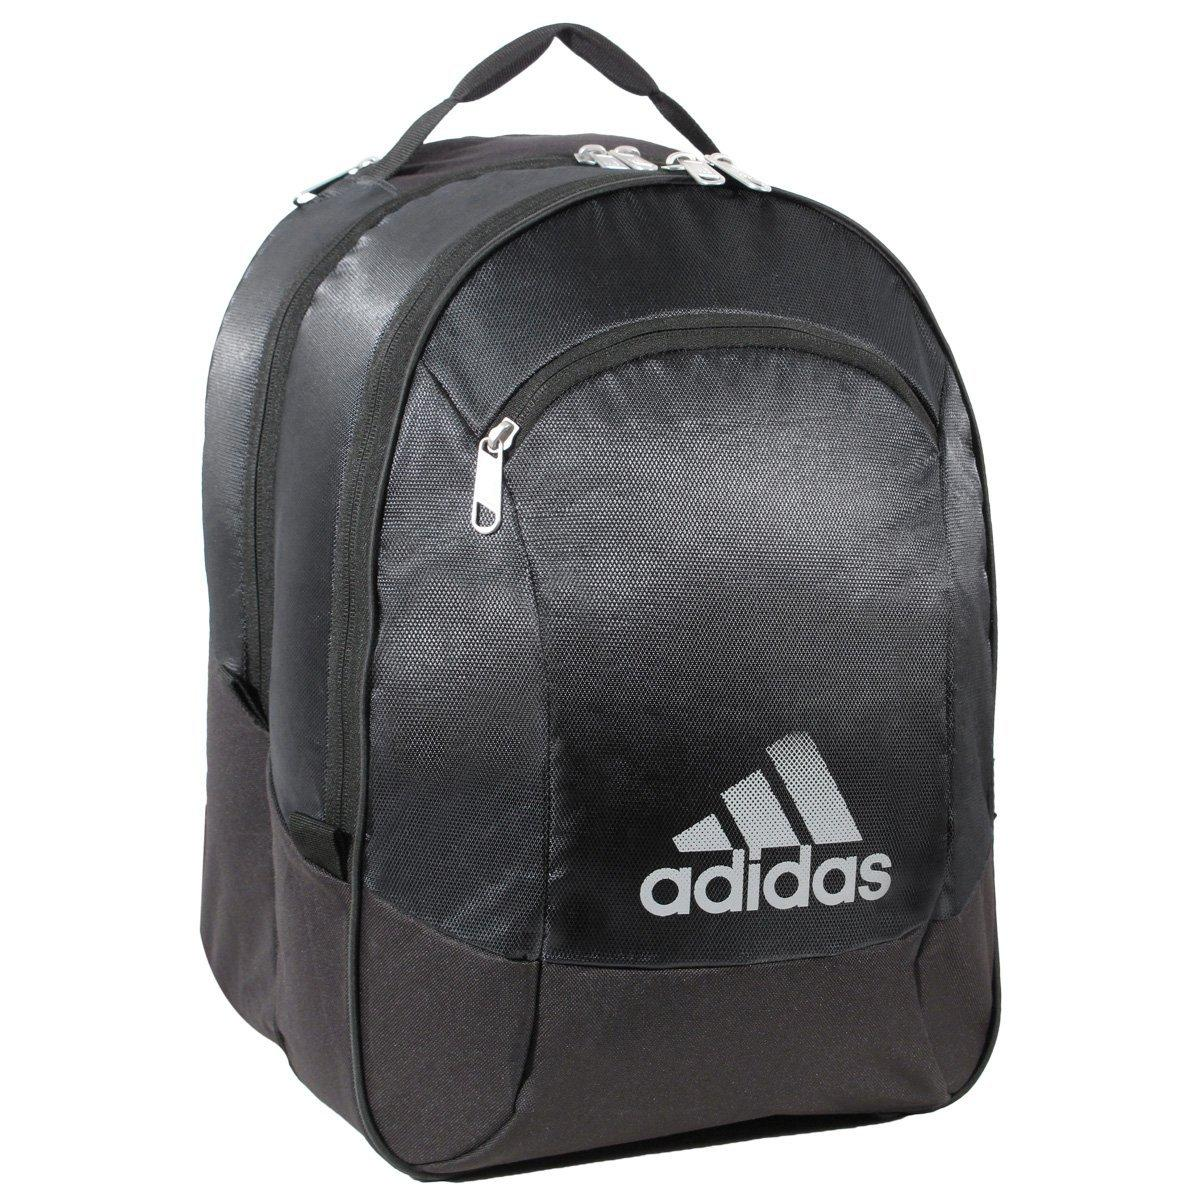 adidas Striker Team Backpack(Black)